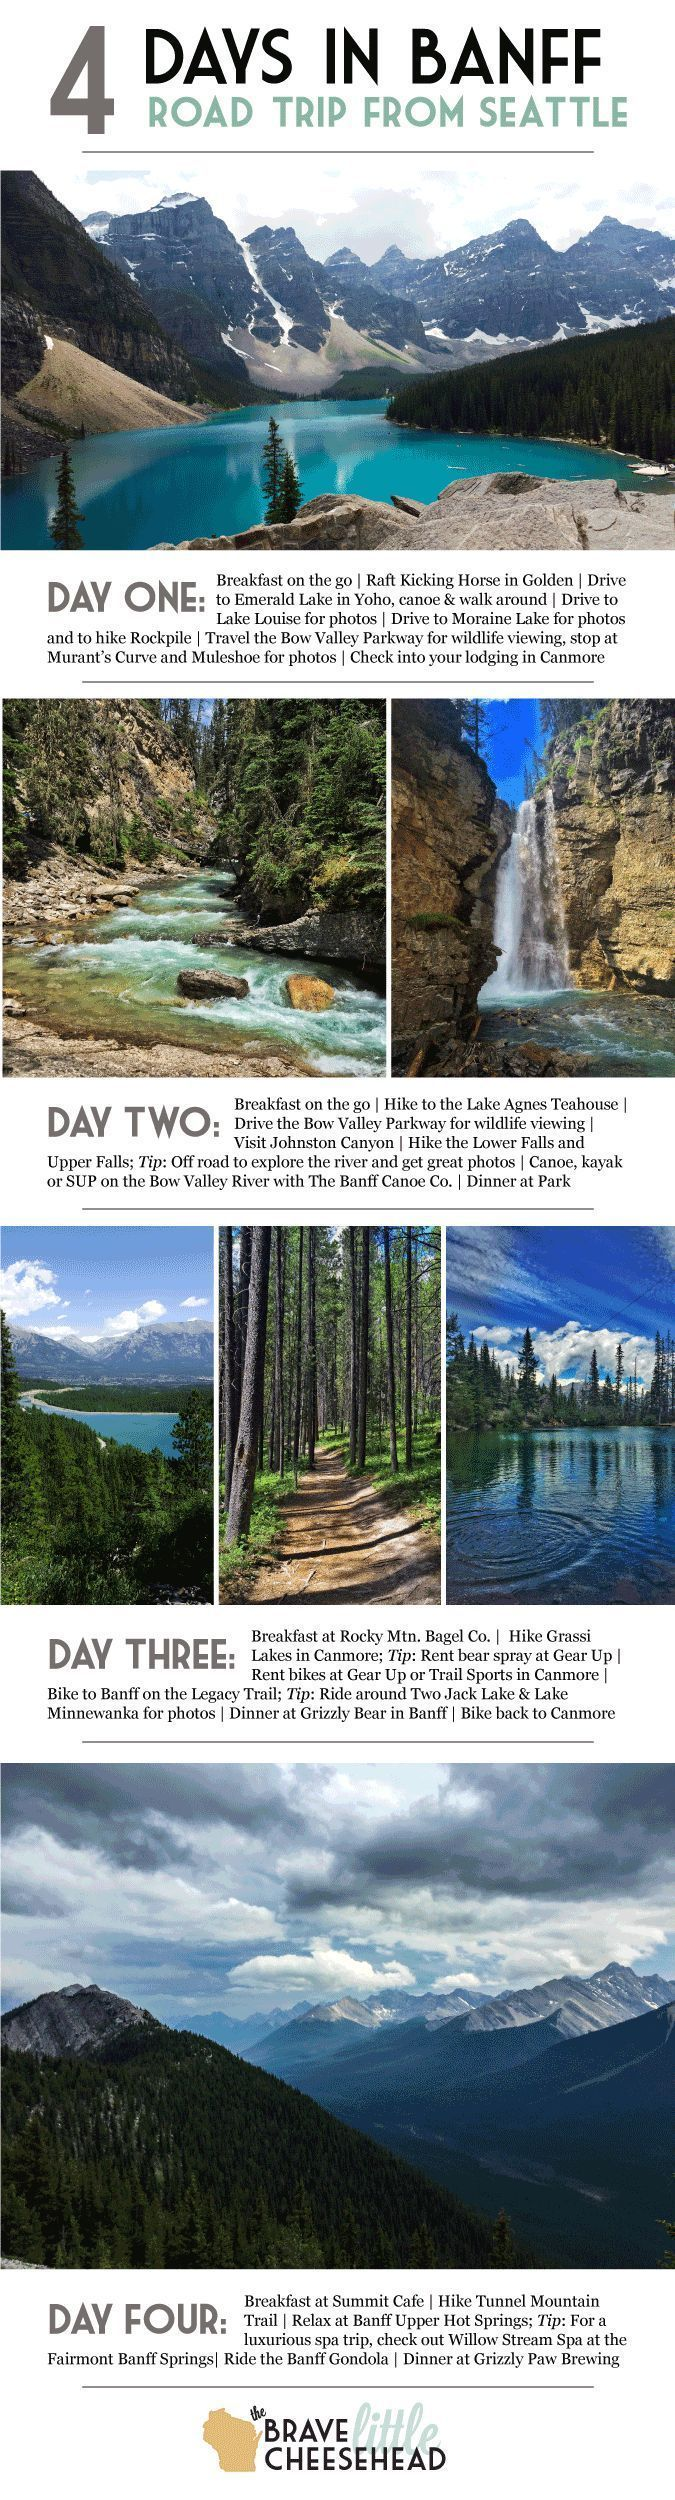 Four Days around Banff National Park, Canada